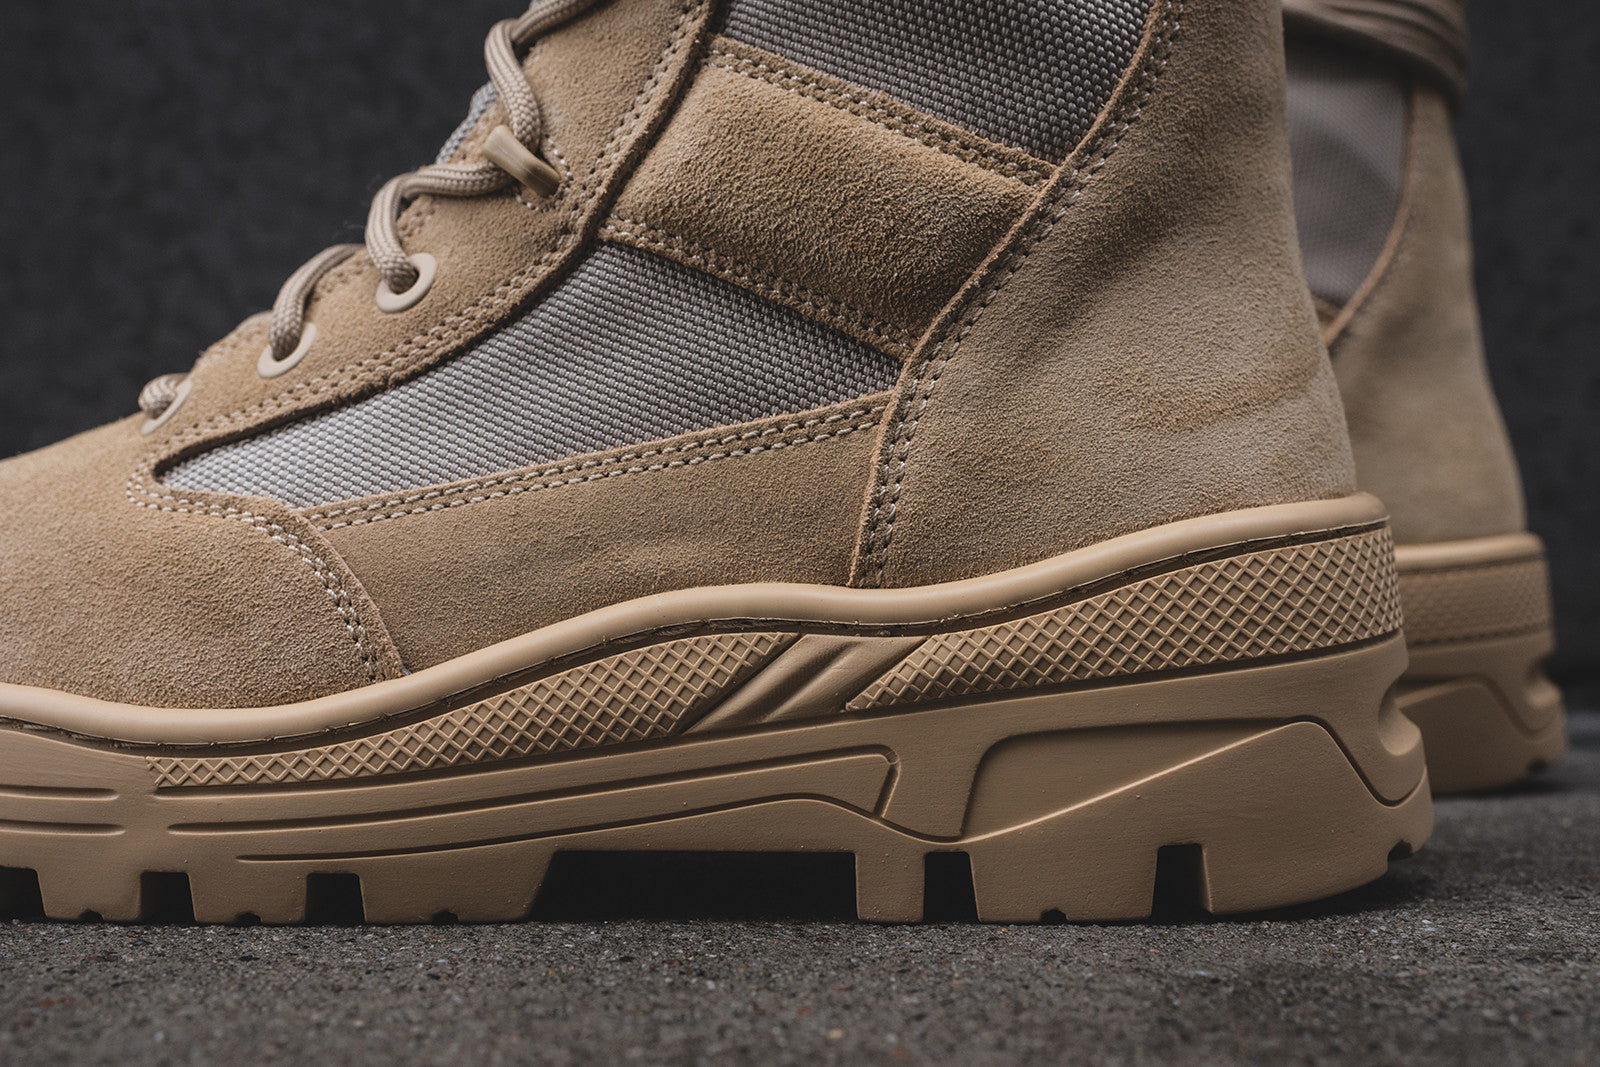 f022ee95d101fd Yeezy Combat Boot Pack – Kith